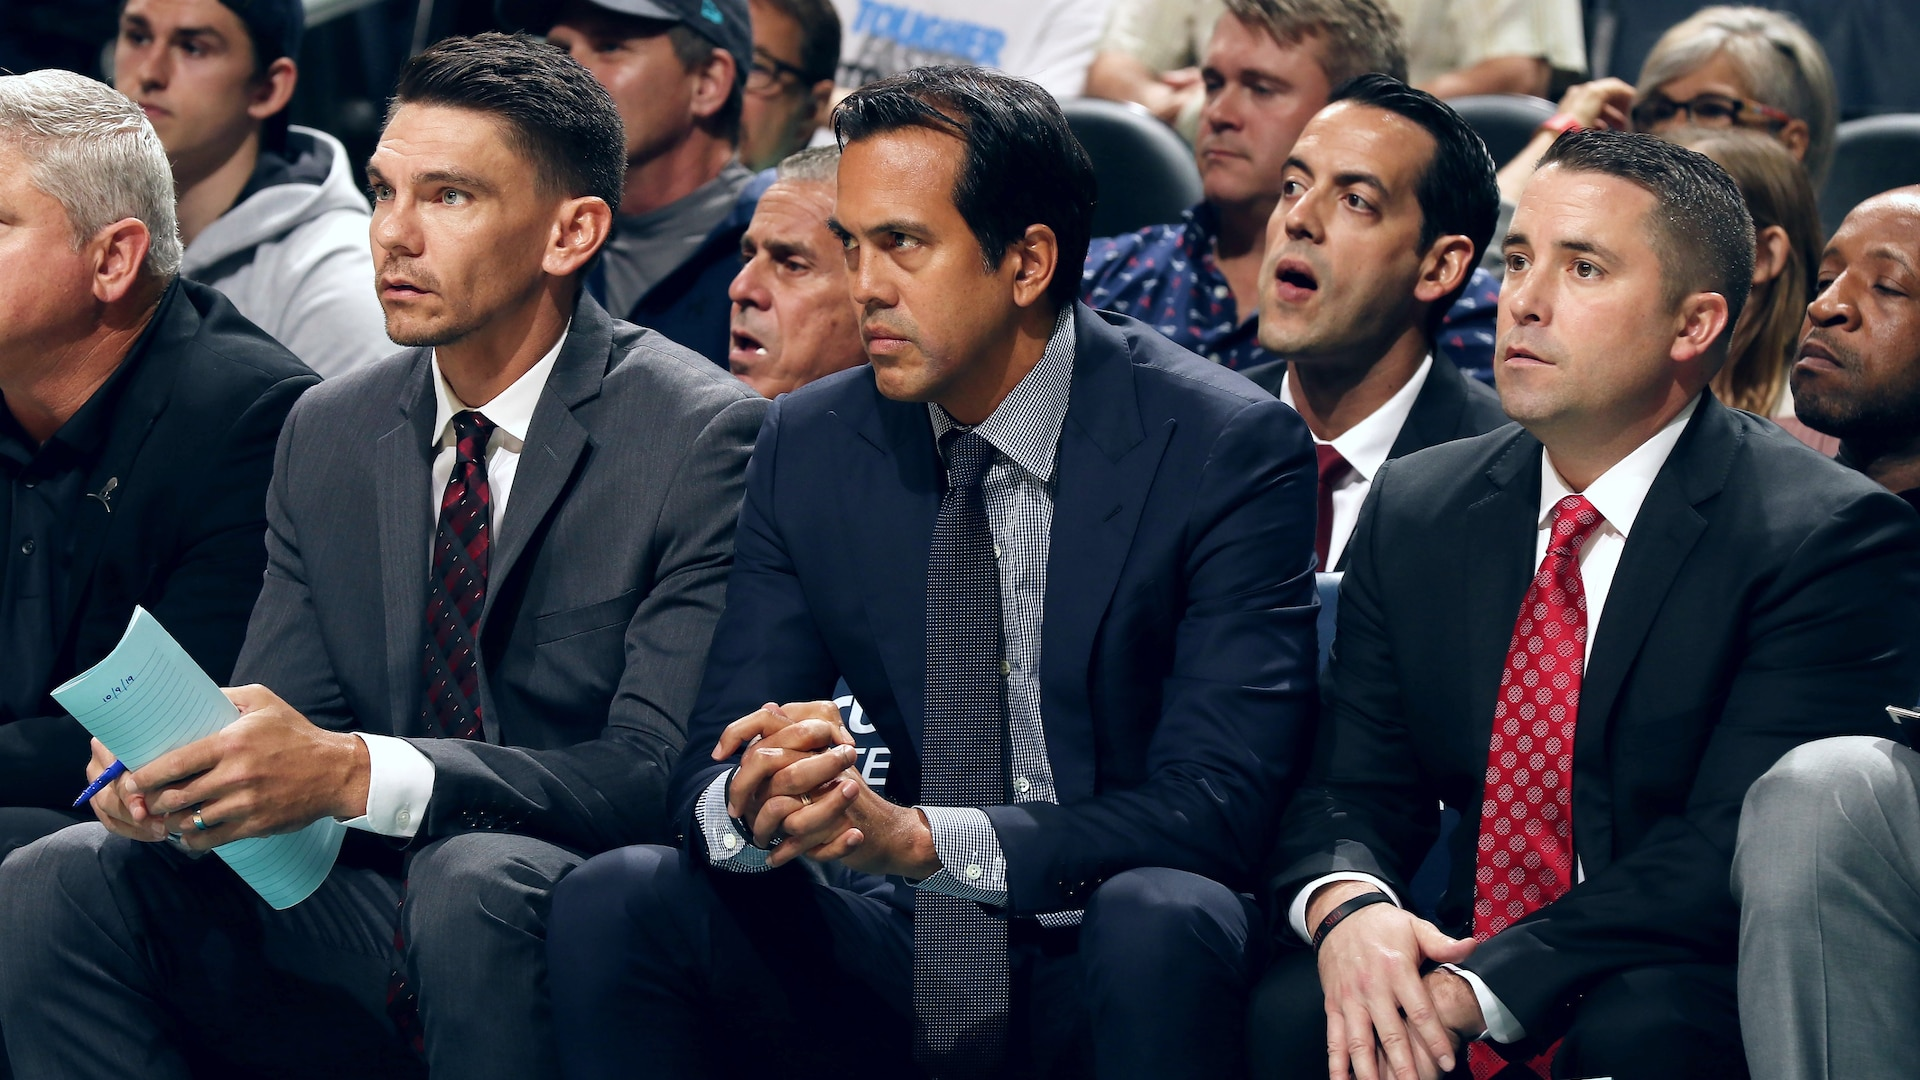 The waiting game: For NBA coaches, that's the new schedule